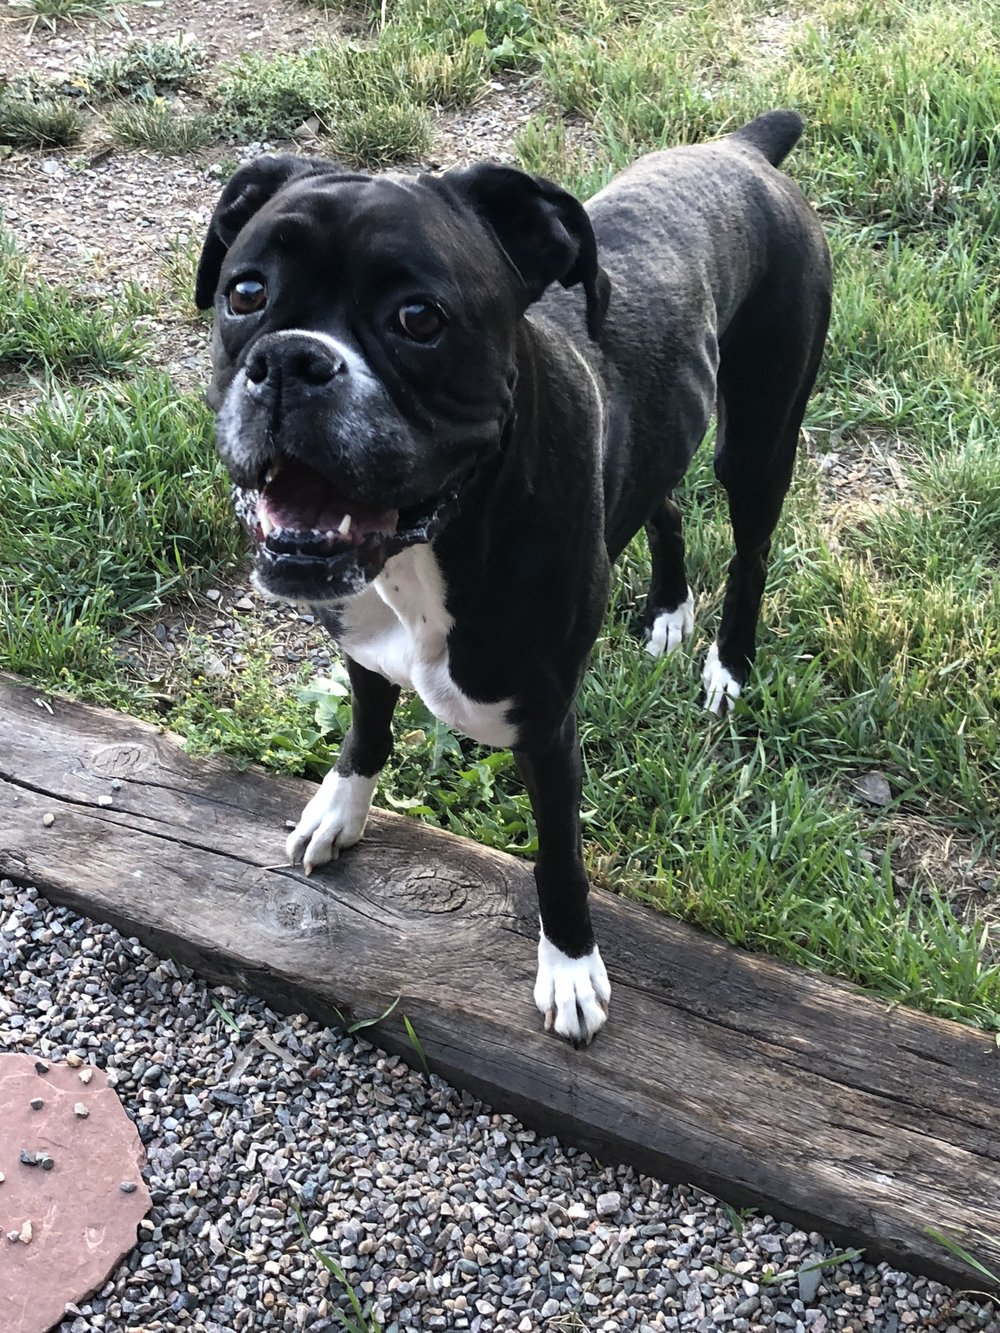 bella   - 9 year old Boxer from Durango, Colorado Needs: Medium/Large Rear-End Wheelchair ~ $350.00Donations received: $350.00 (Updated 8/10/2018)Please consider donating to other puppers on our waiting list.